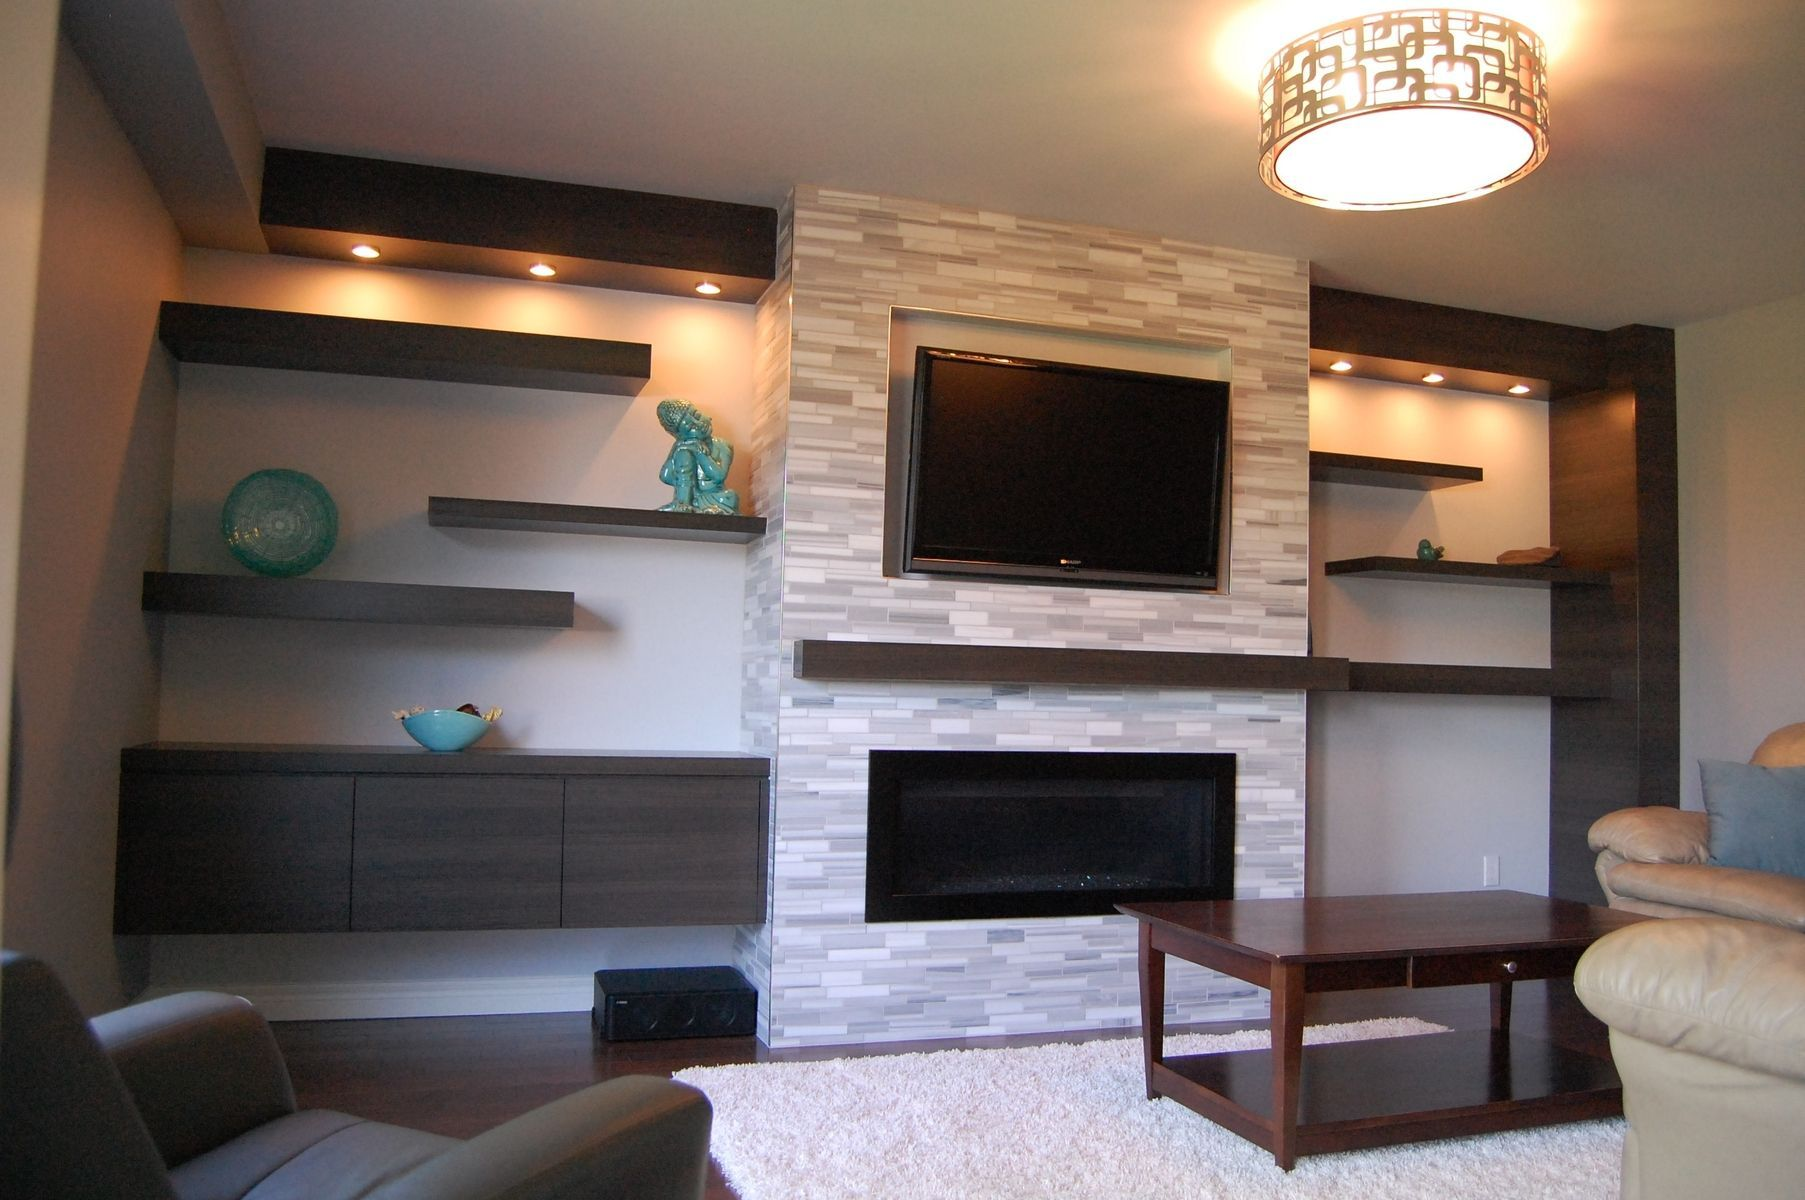 Custom Modern Wall Unit Made Pletely From A Printed Melamine Made From Tafisa Custommad Modern Wall Units Contemporary Fireplace Contemporary Fireplace Designs